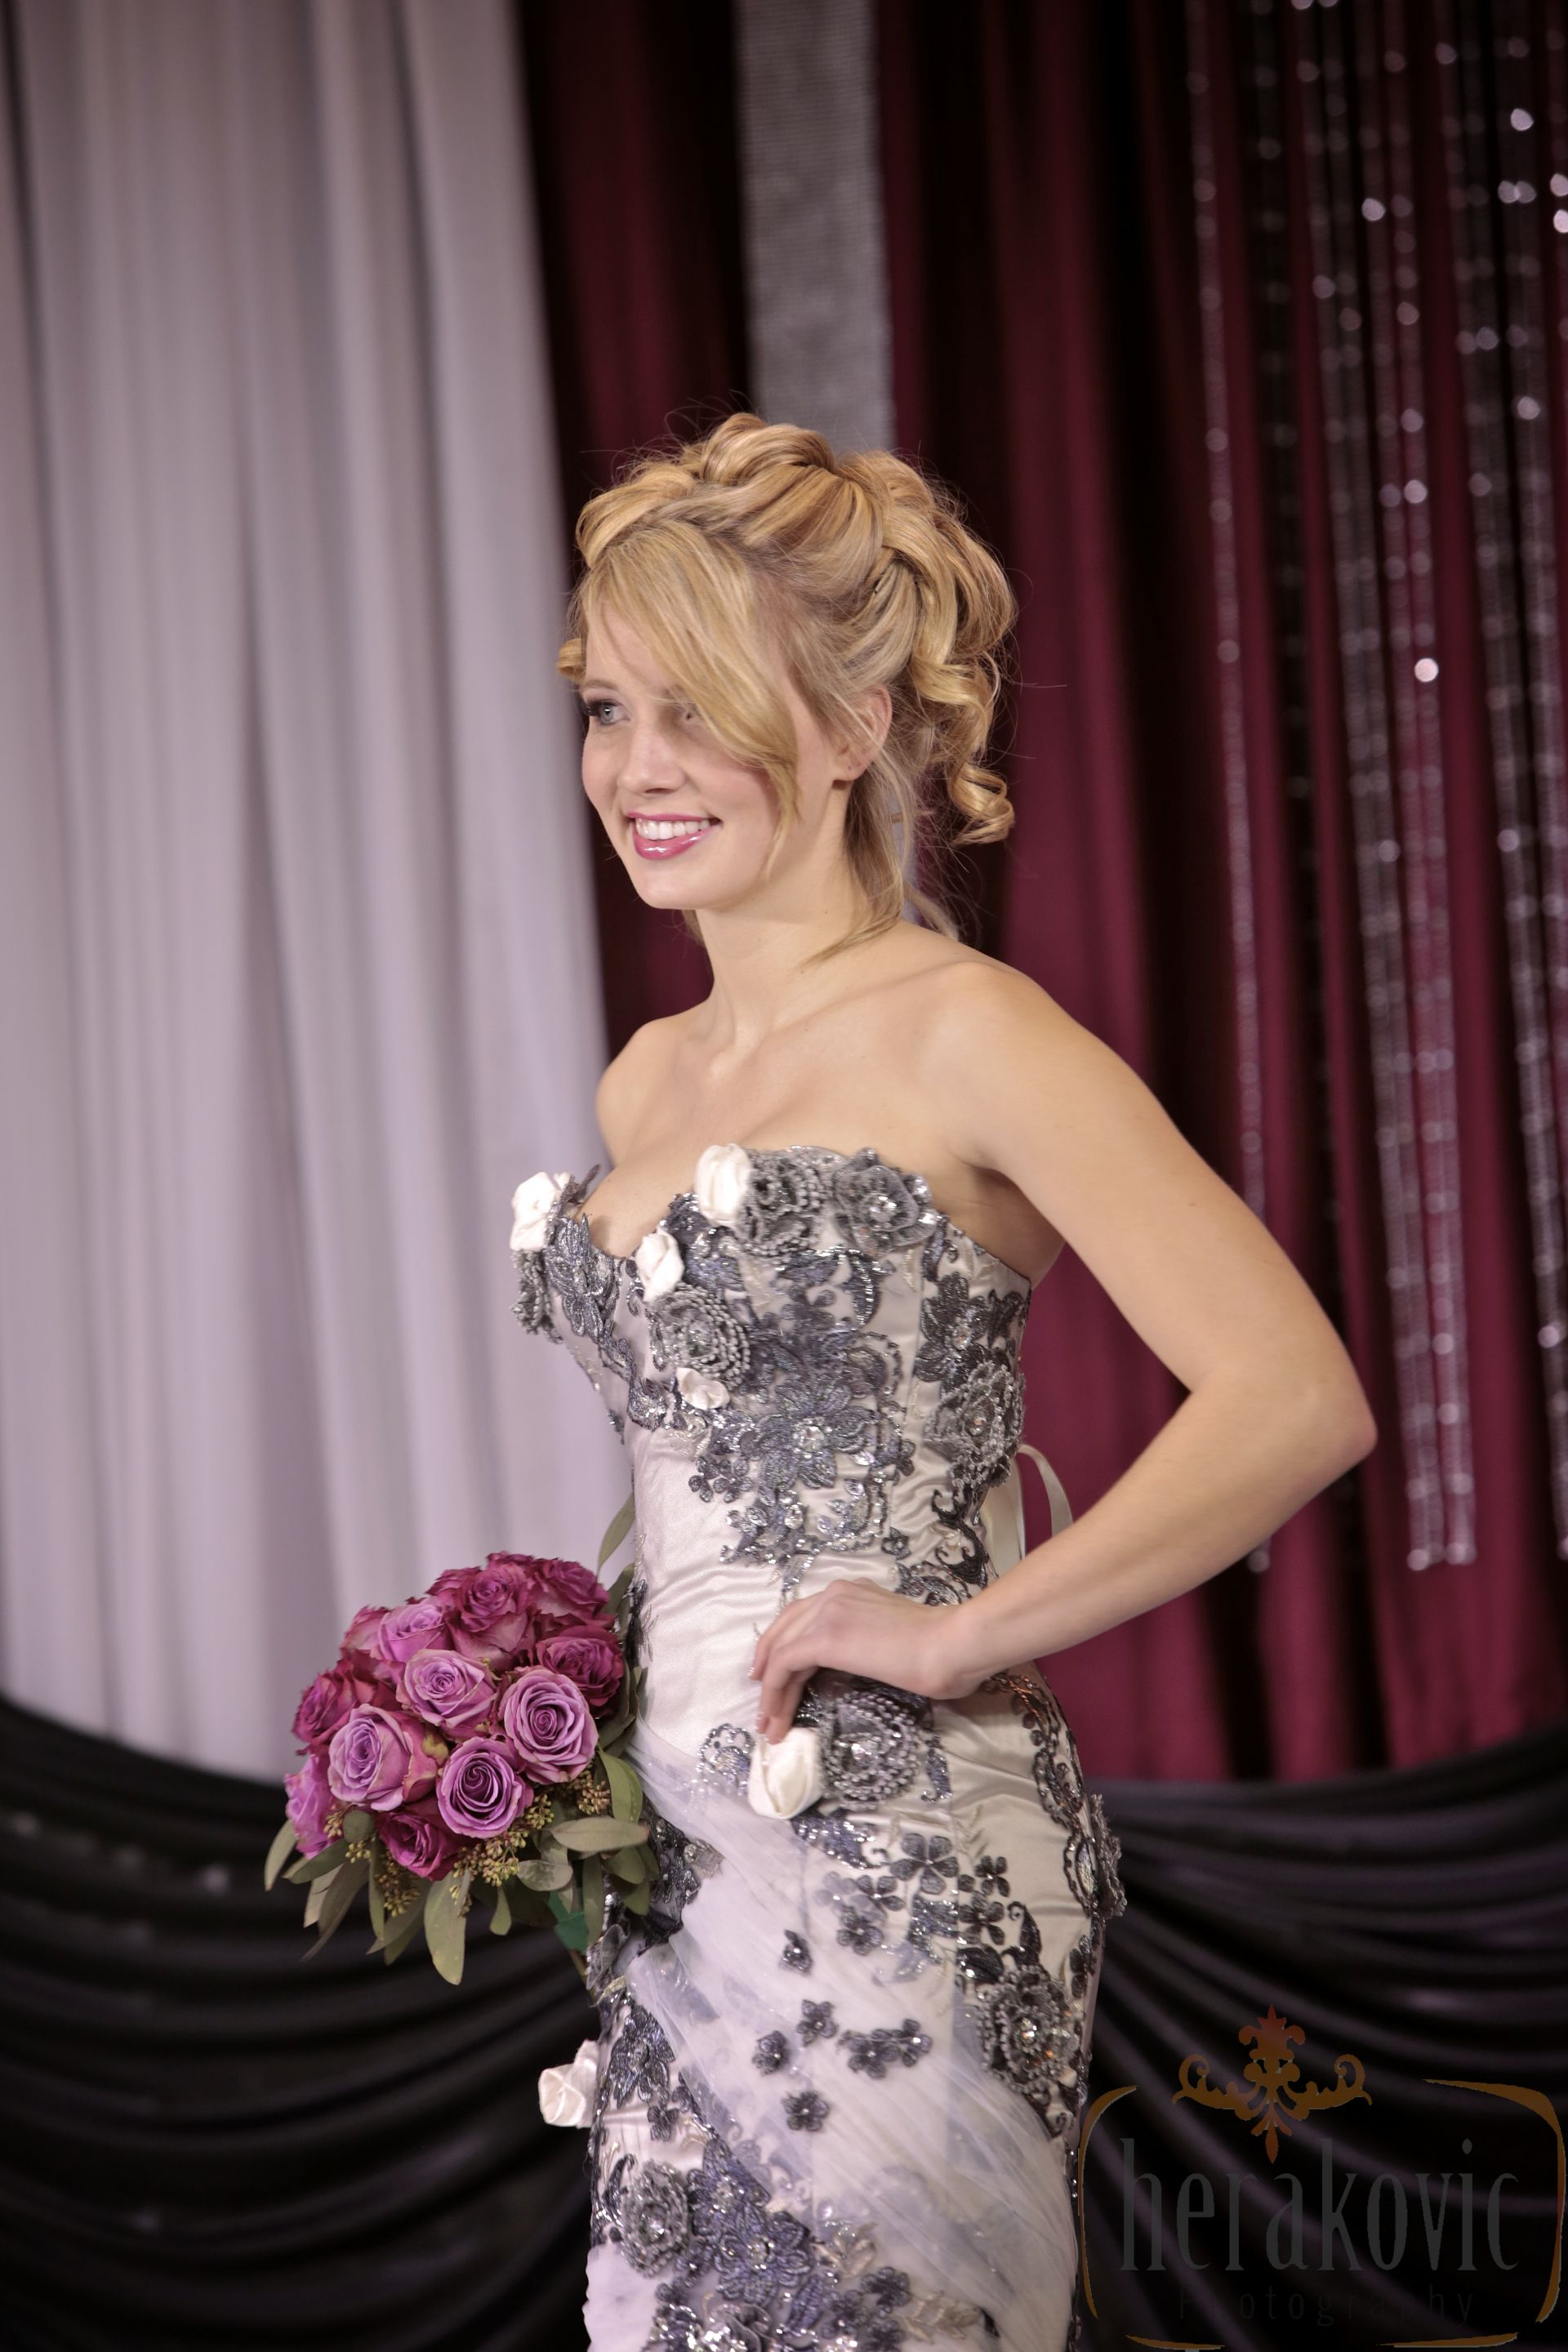 Bridal Fashion Show  Flowers by: Living Fresh http://livingfresh.ca  Photography by: Herakovic Photography http://www.hrkvc.com